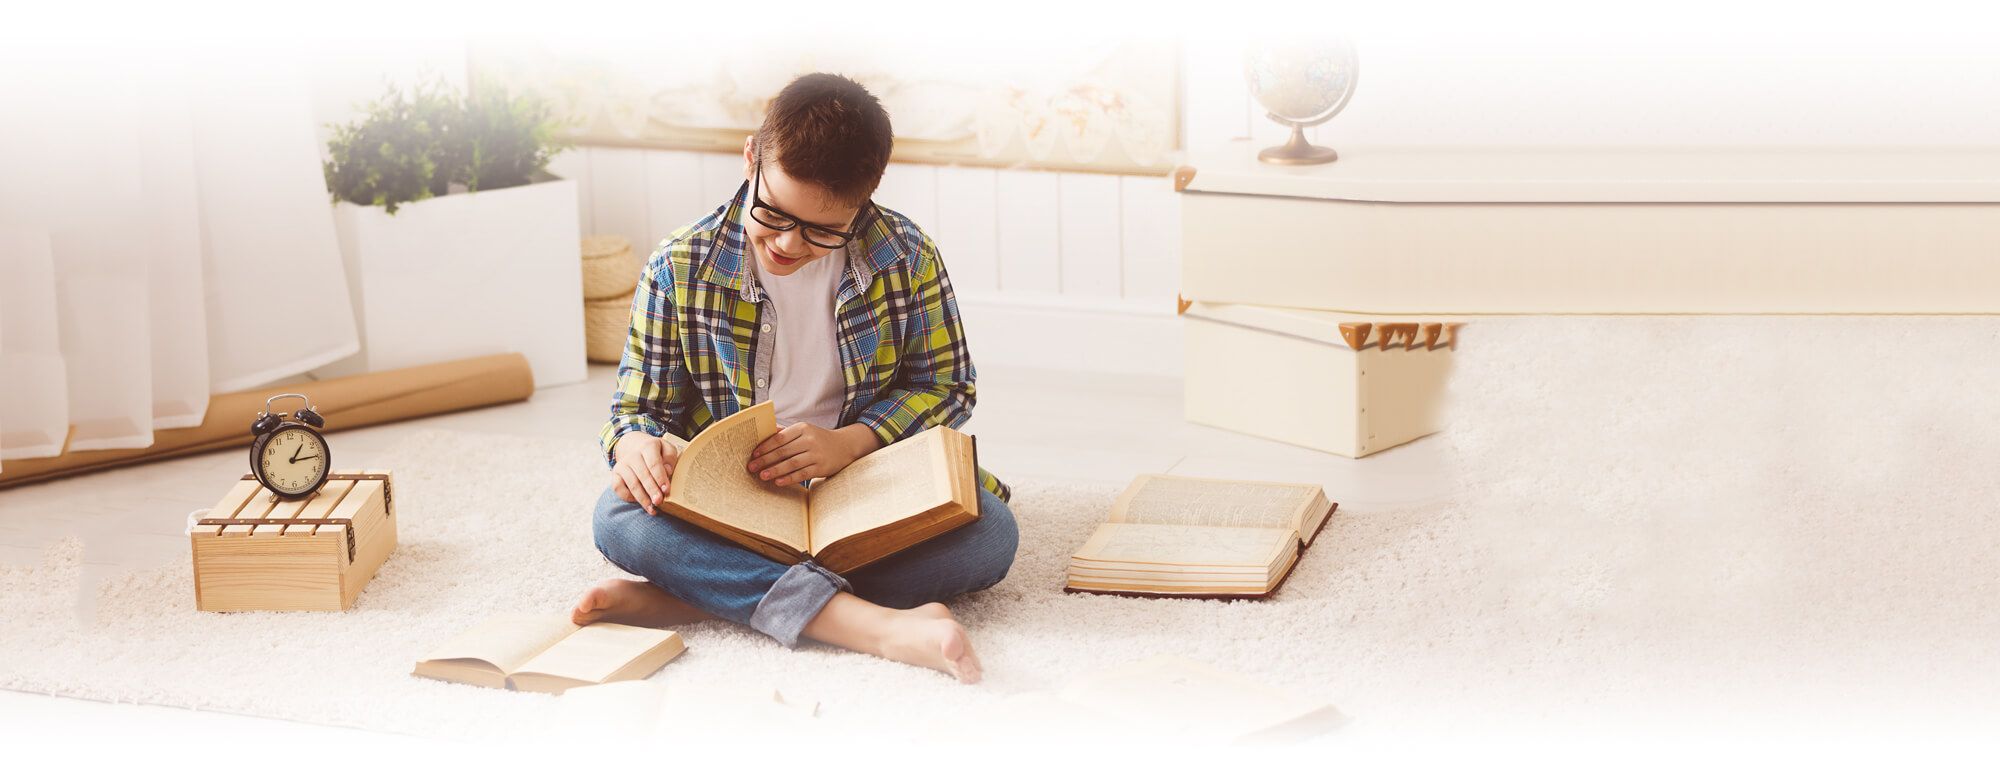 student boy sitting on floor reading book